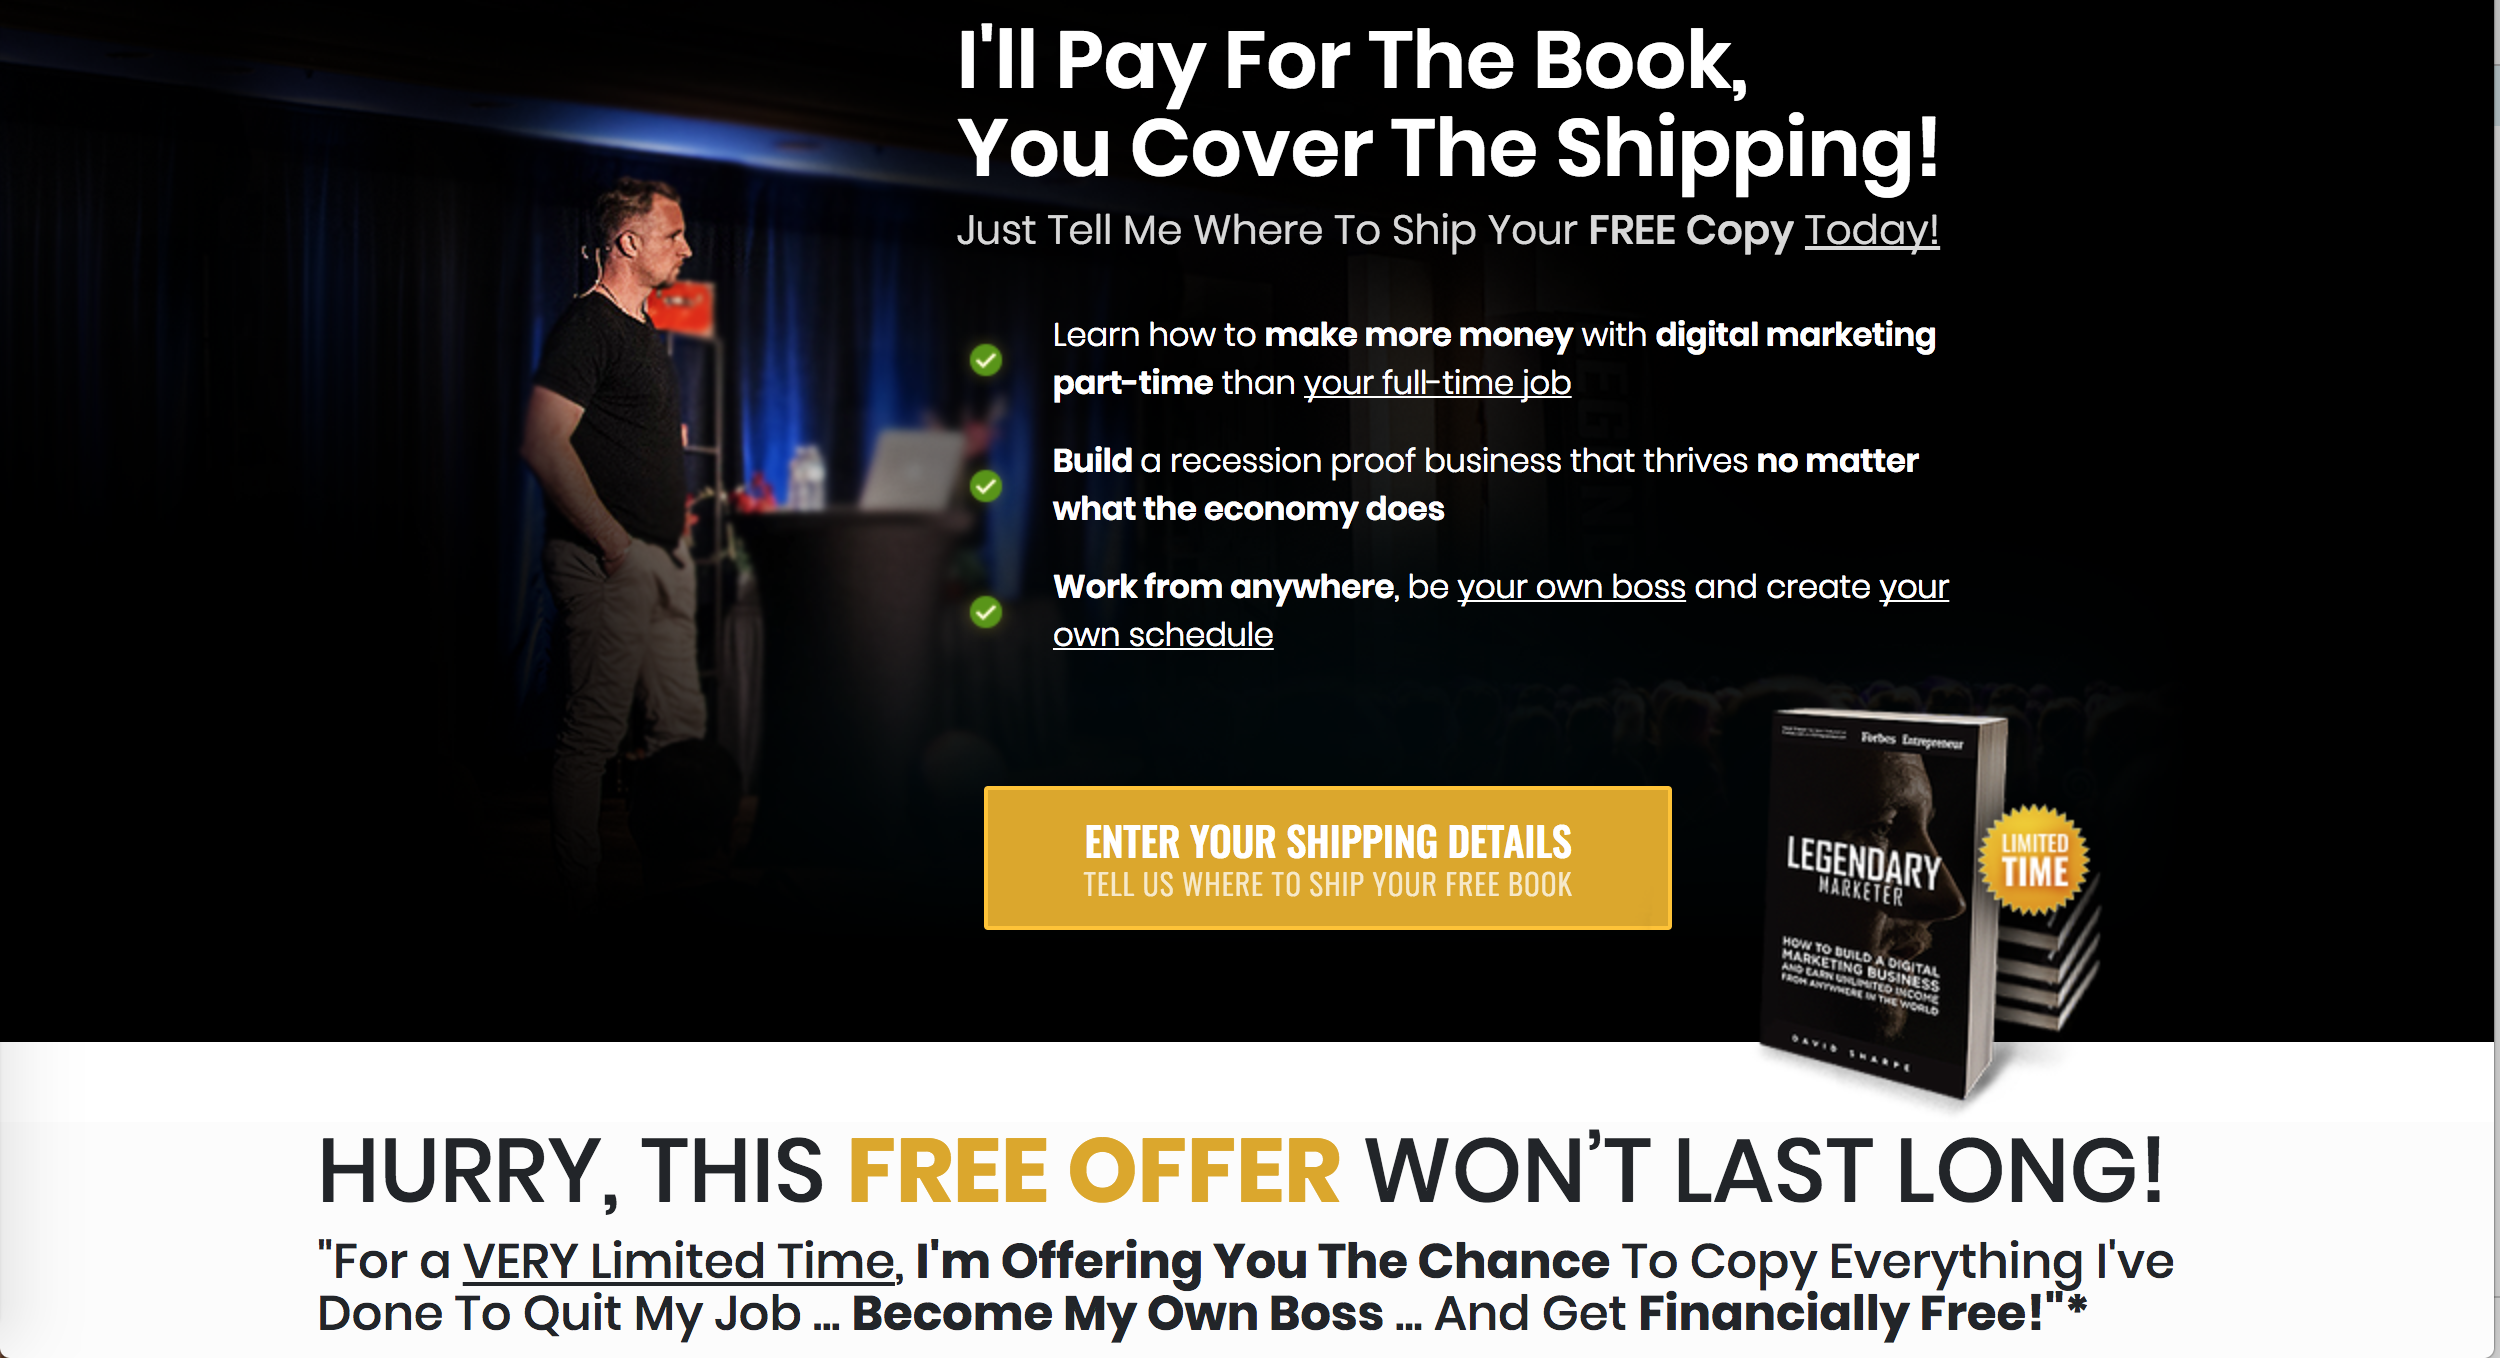 Trade In Value Best Buy  Legendary Marketer Internet Marketing Program